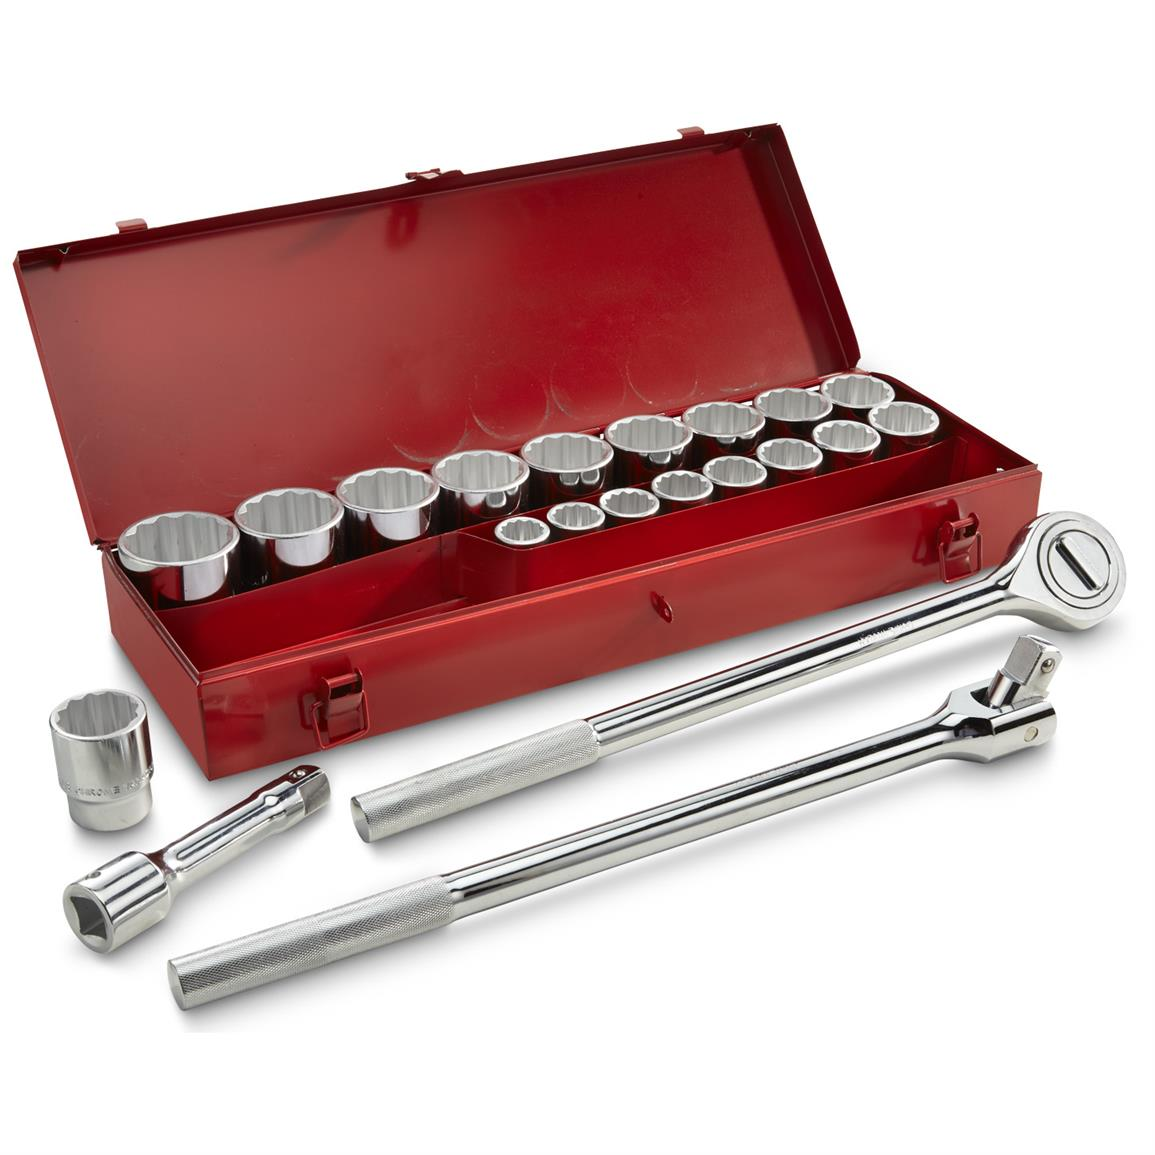 Set includes the ratchet, socket extender, breaker bar and sockets